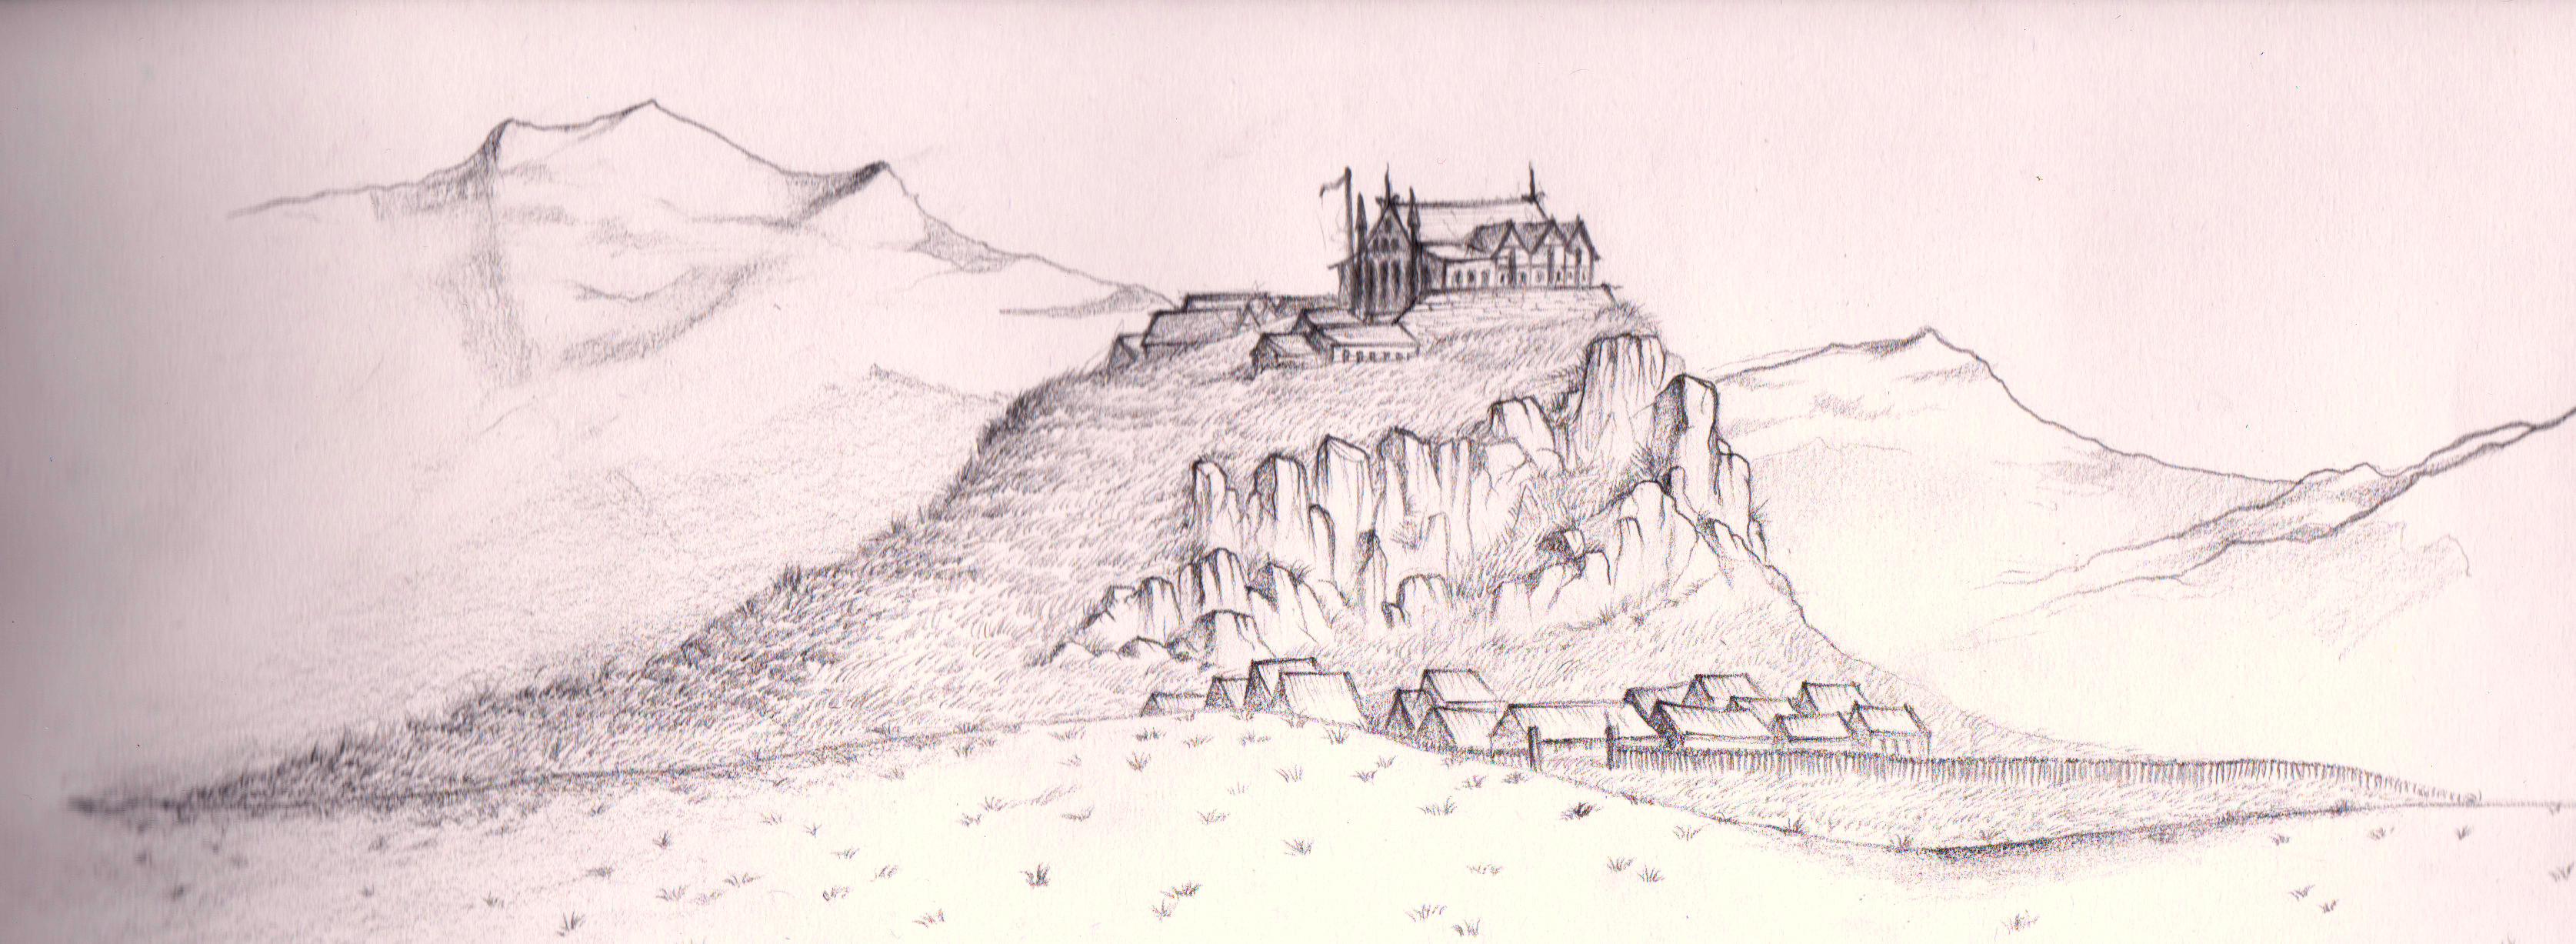 edoras wallpaper - photo #32